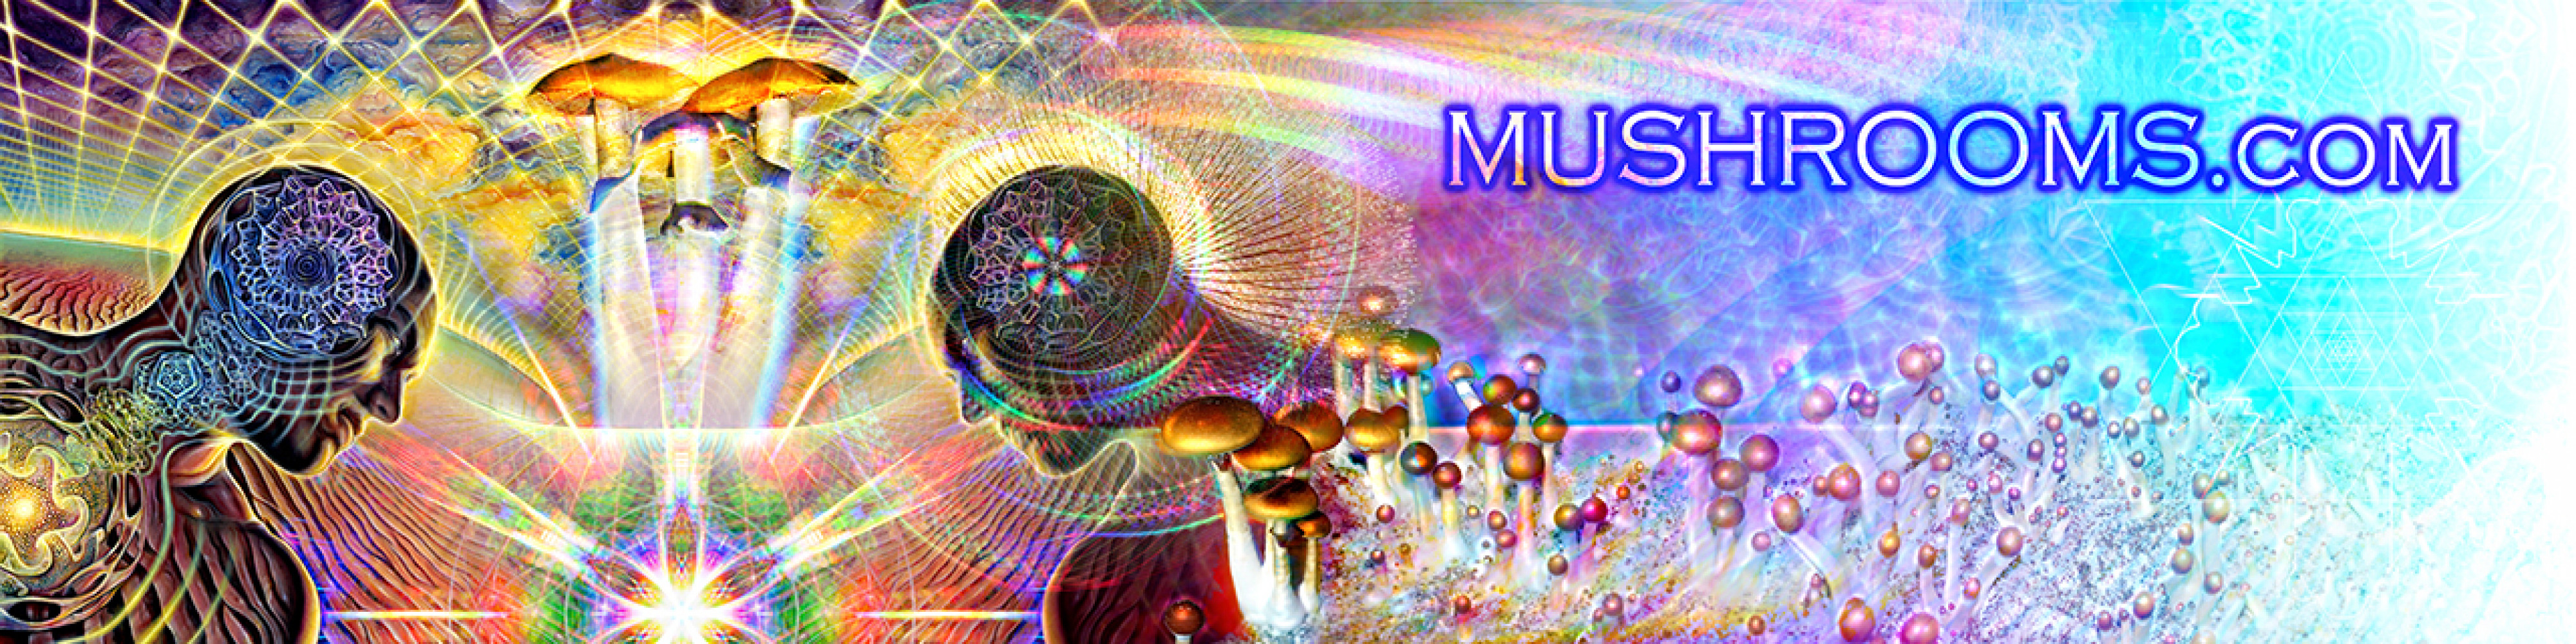 muShrooms.com